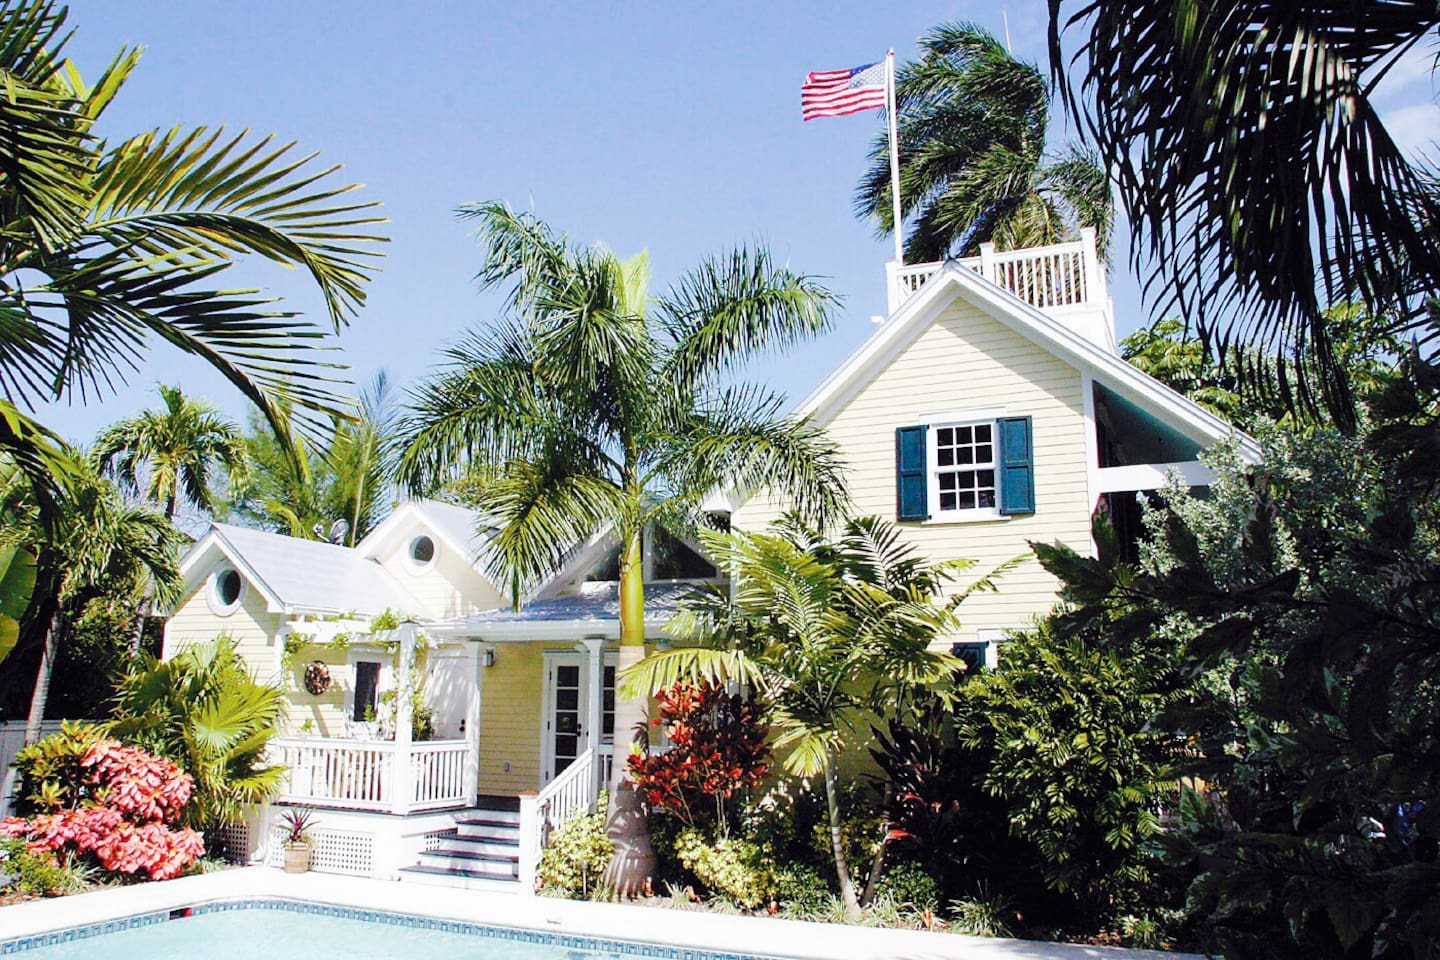 Paradise Key West style with a top floor observation deck on the harbor to the right by the flag.